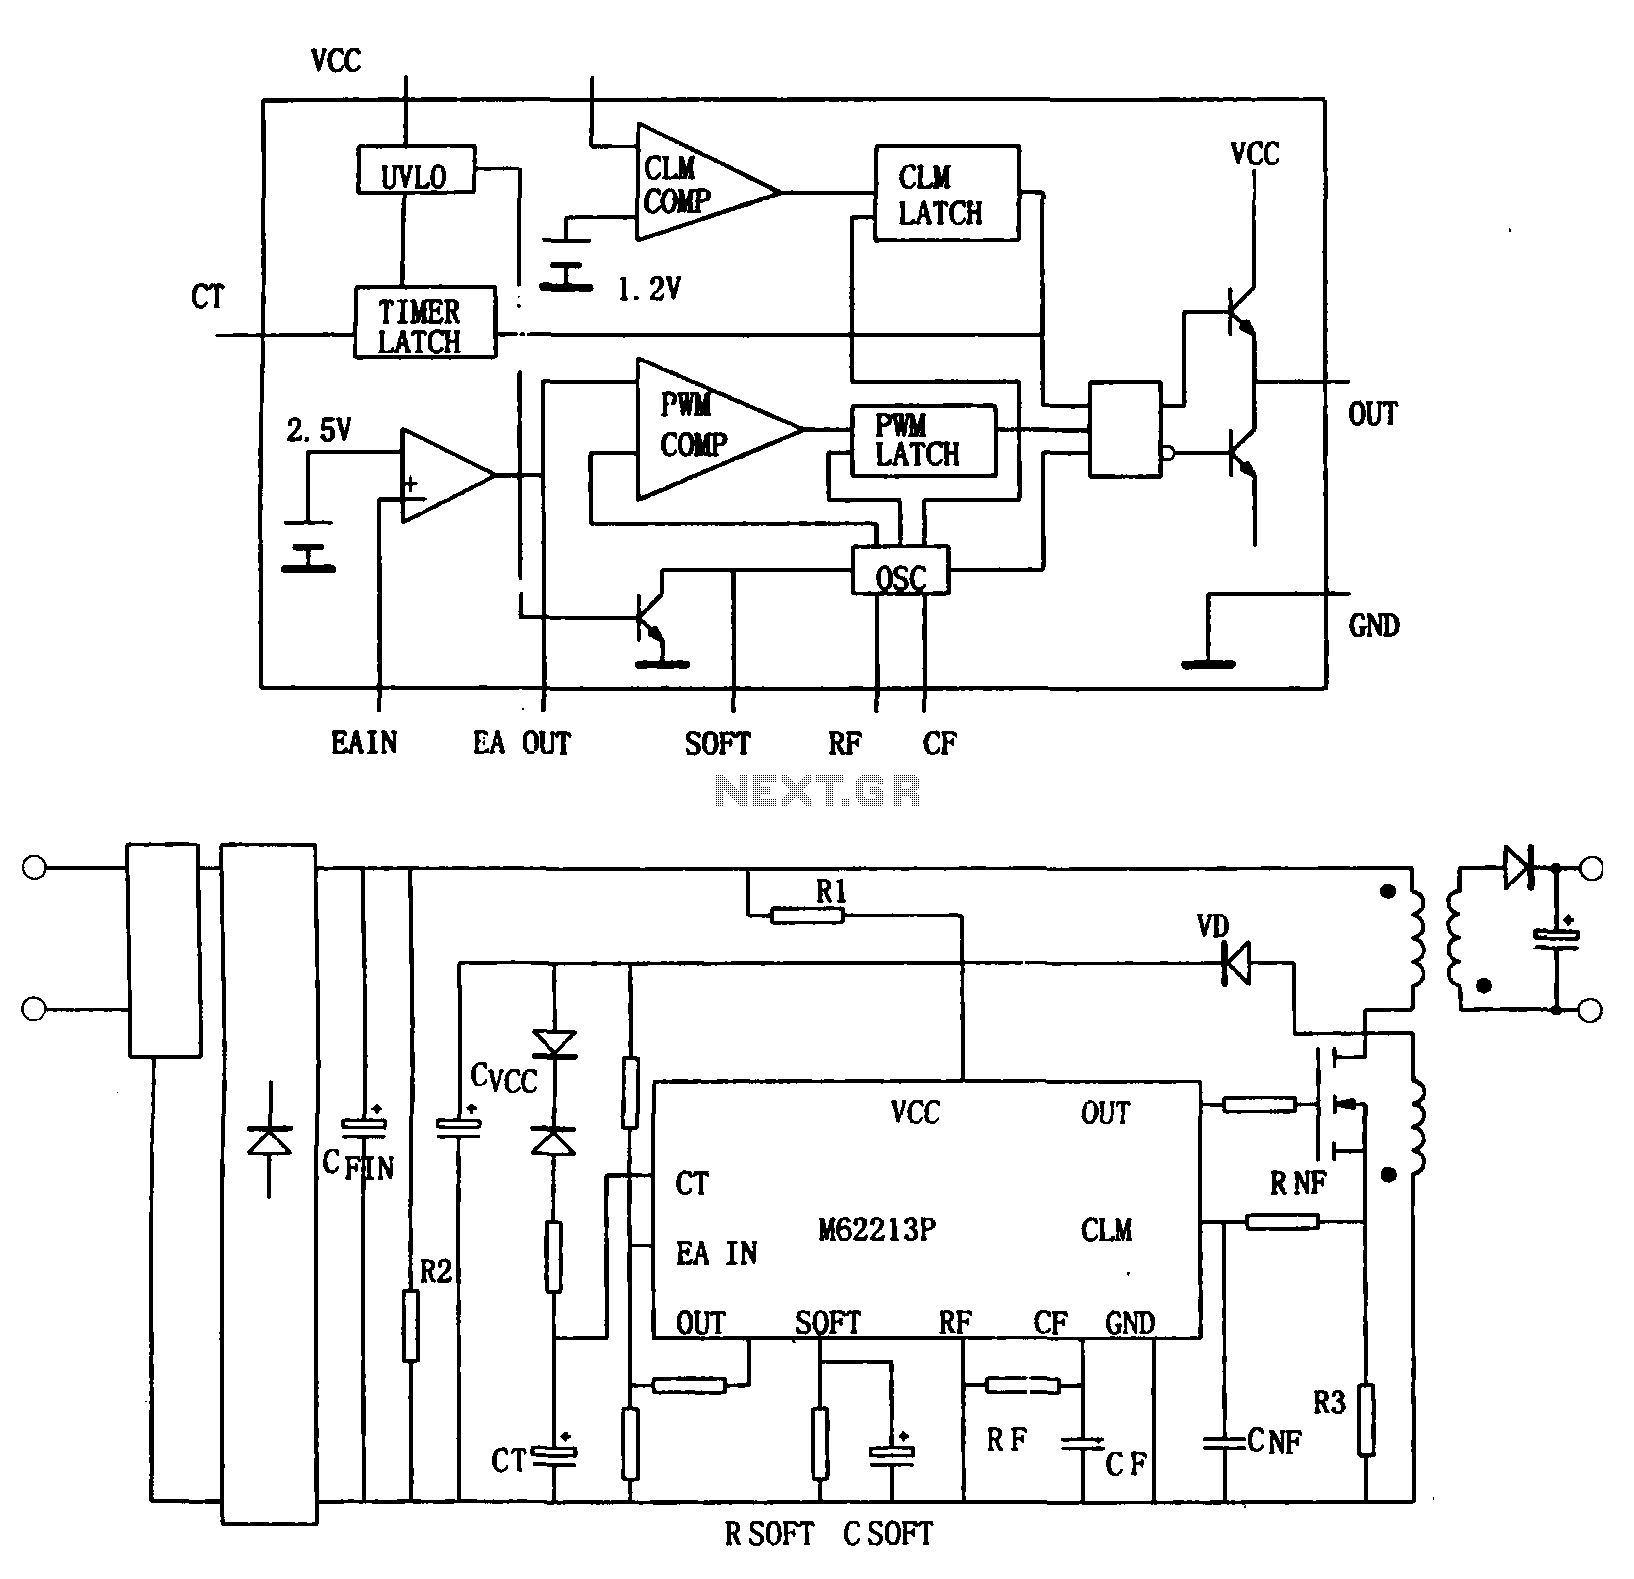 Top Circuits Page 71 Ccc Wiring Diagram Switching Power Supply From The High Speed Controller M62213fp